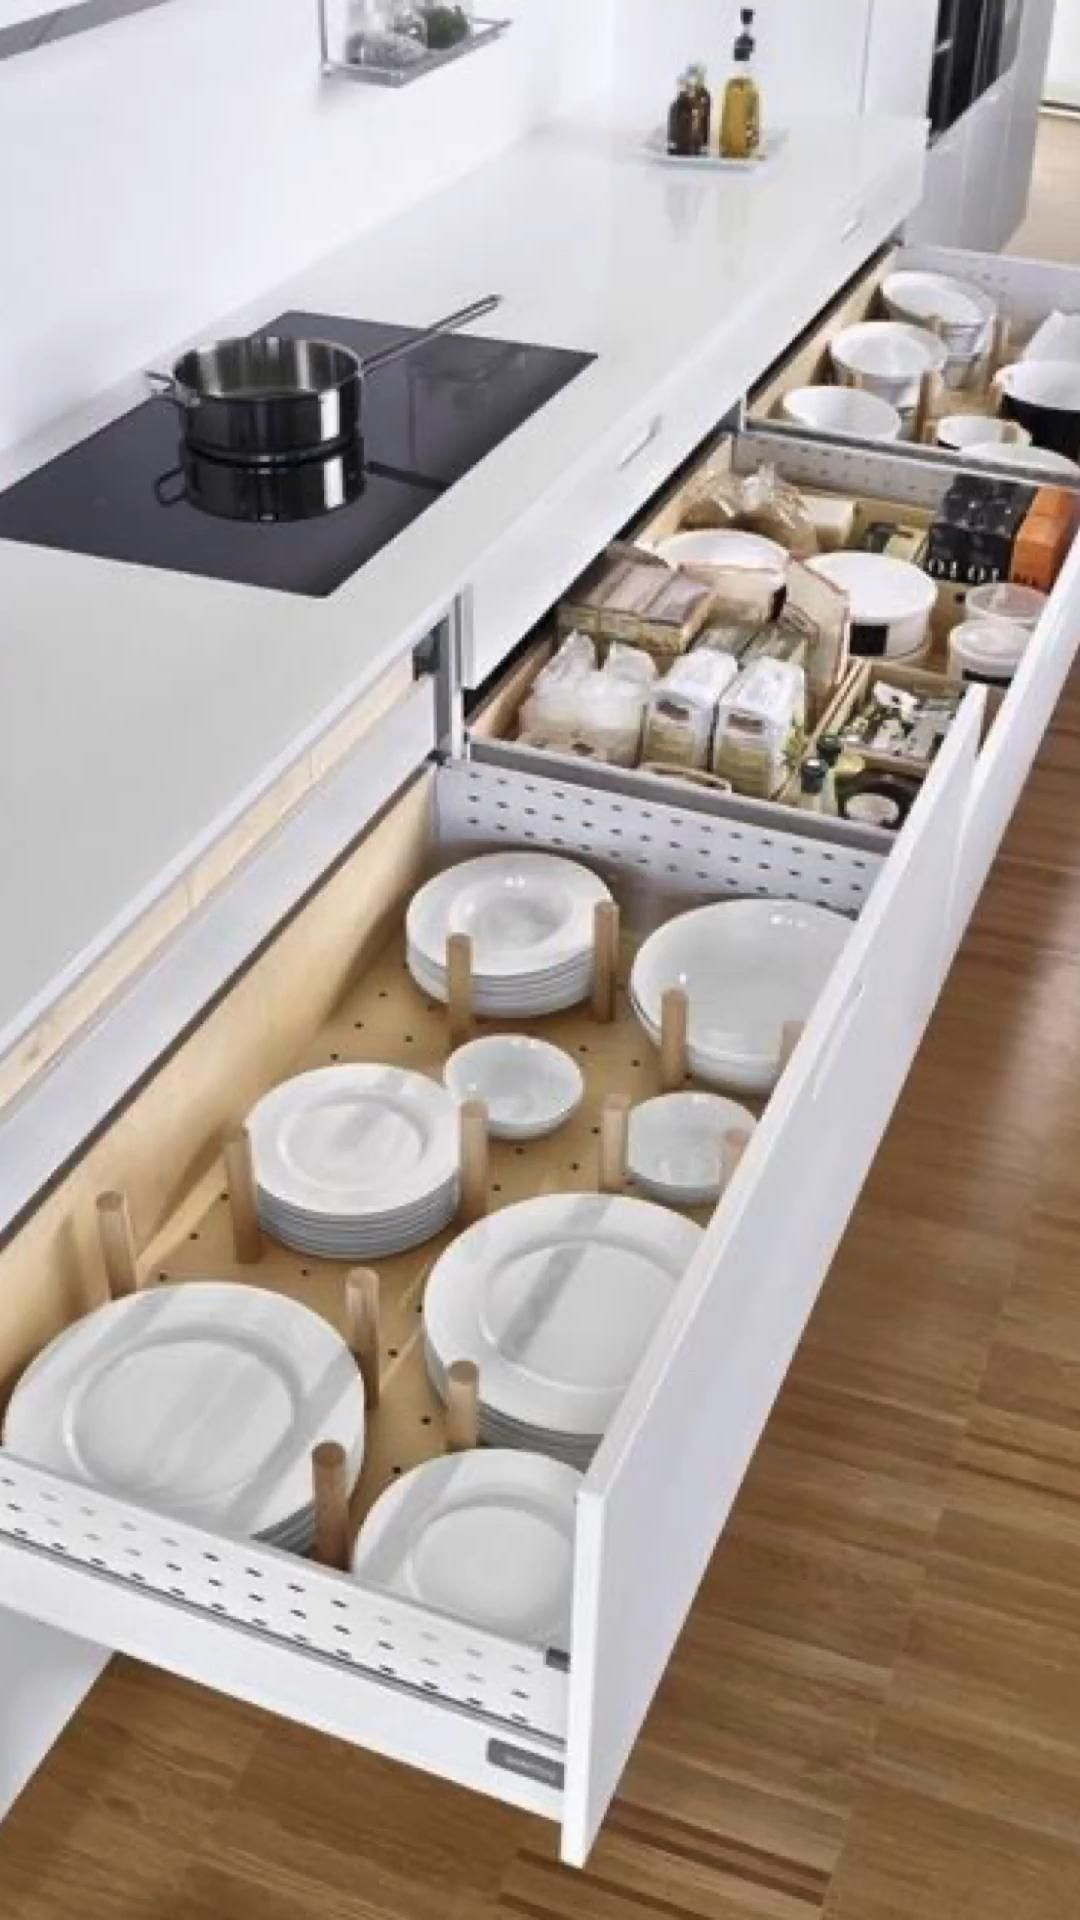 Kitchen Organization: What's in your Drawers?